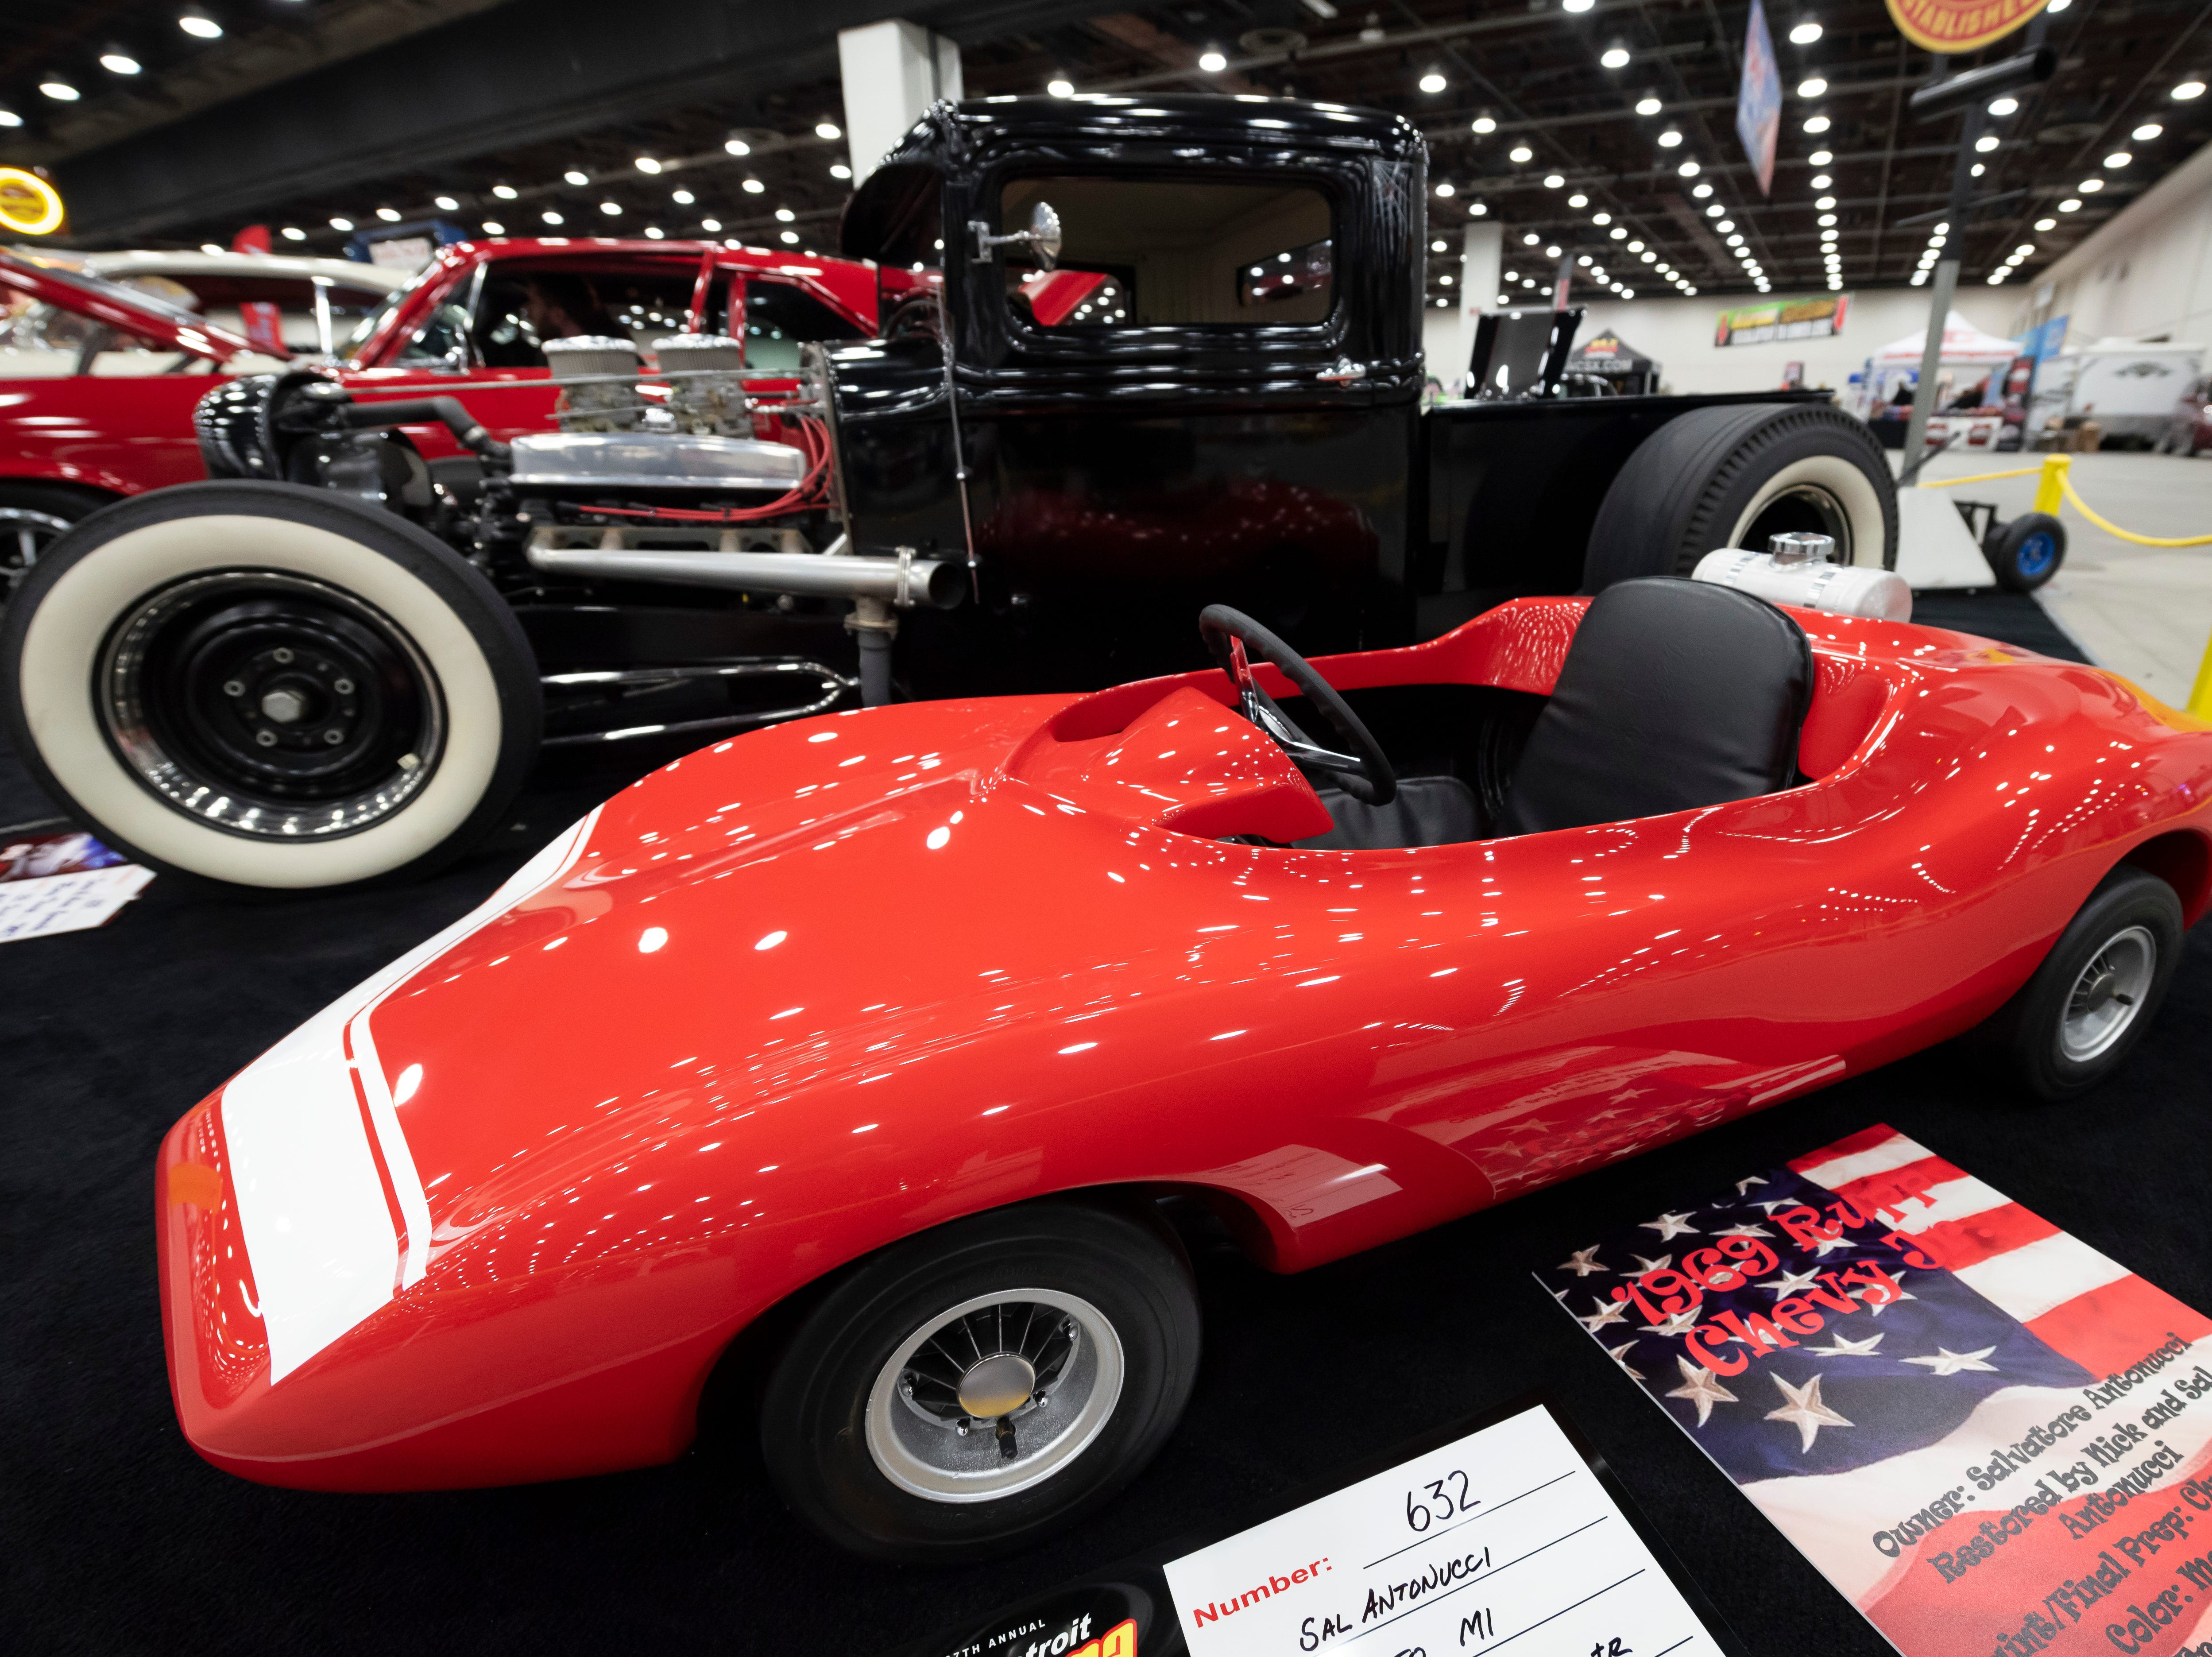 A 1969 Rupp Chevy Jr. owned by Sal Antonucci, of Romeo.